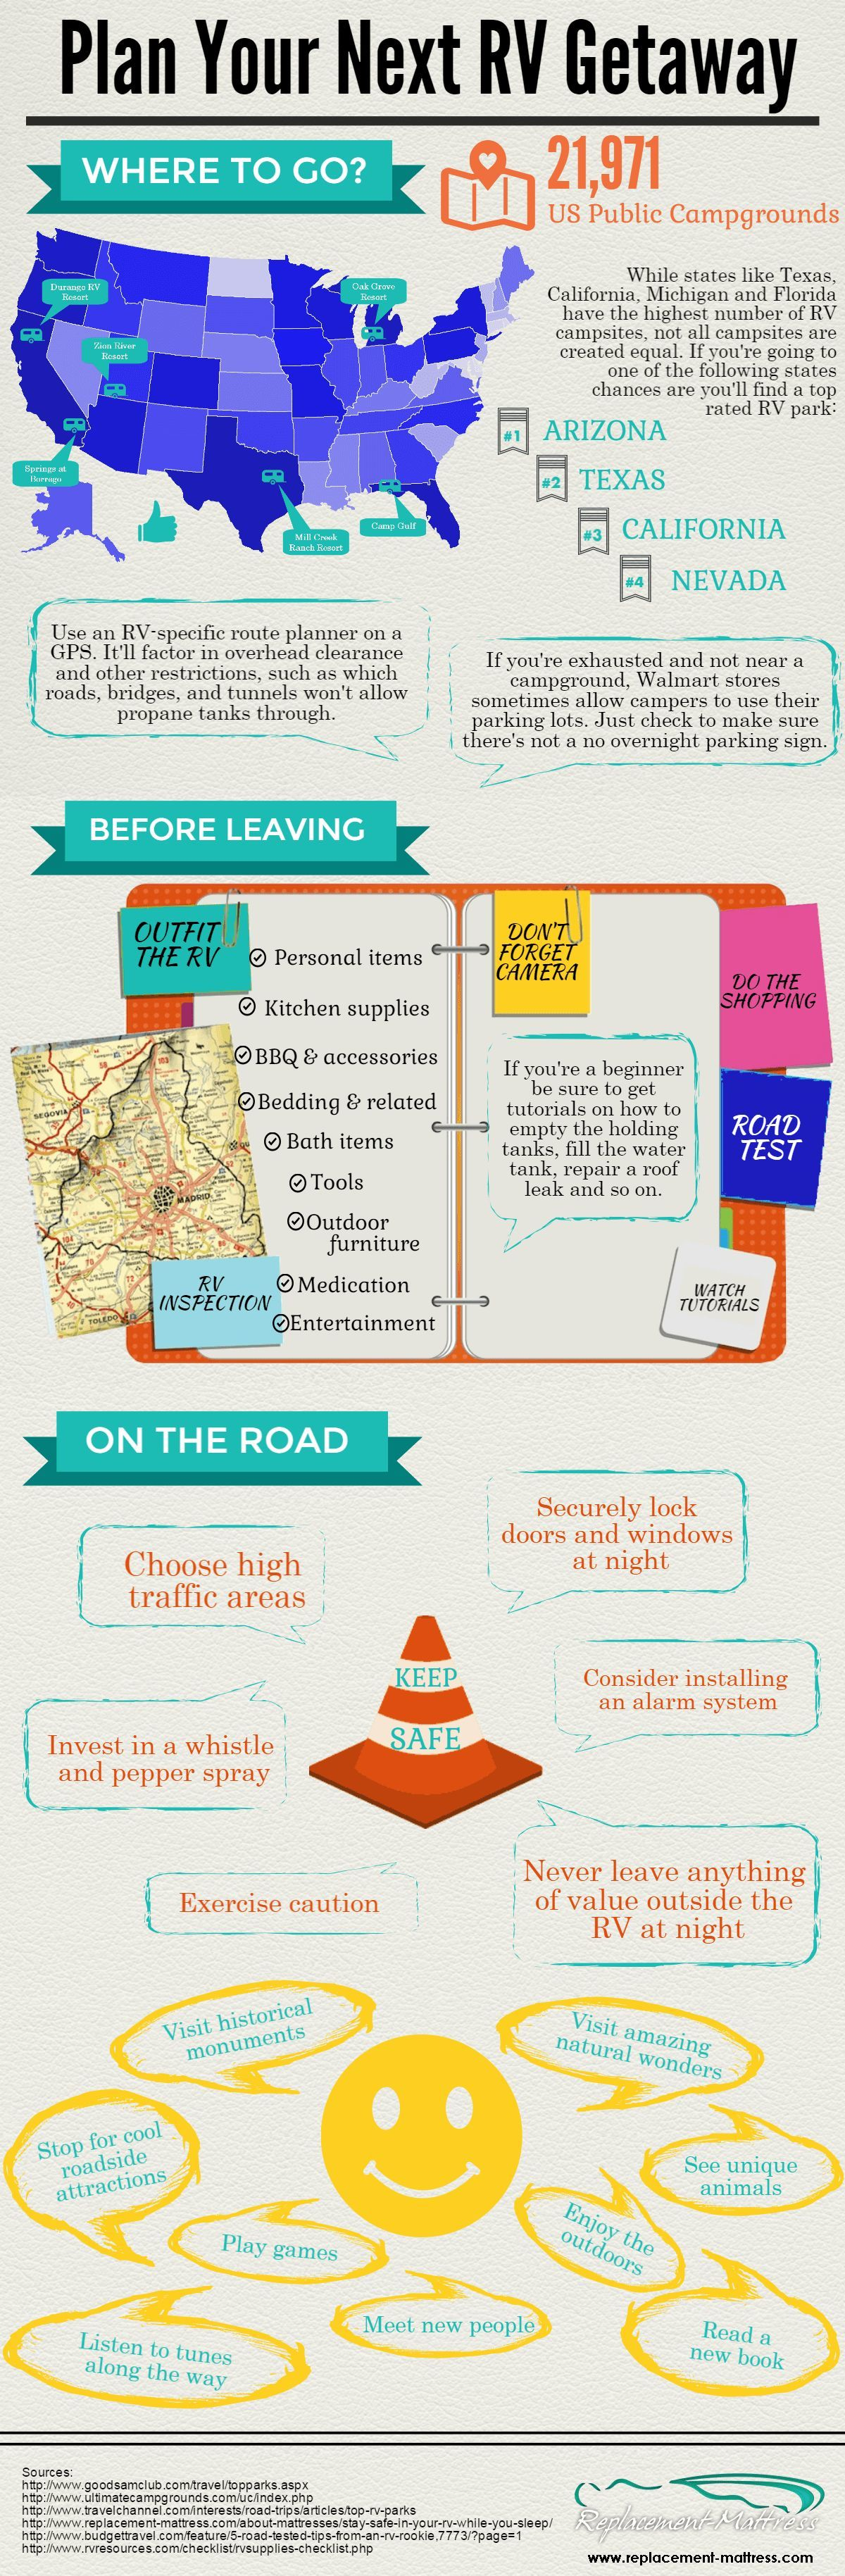 Plan Your RV Trip - Infographic by Replacement-Mattress.com